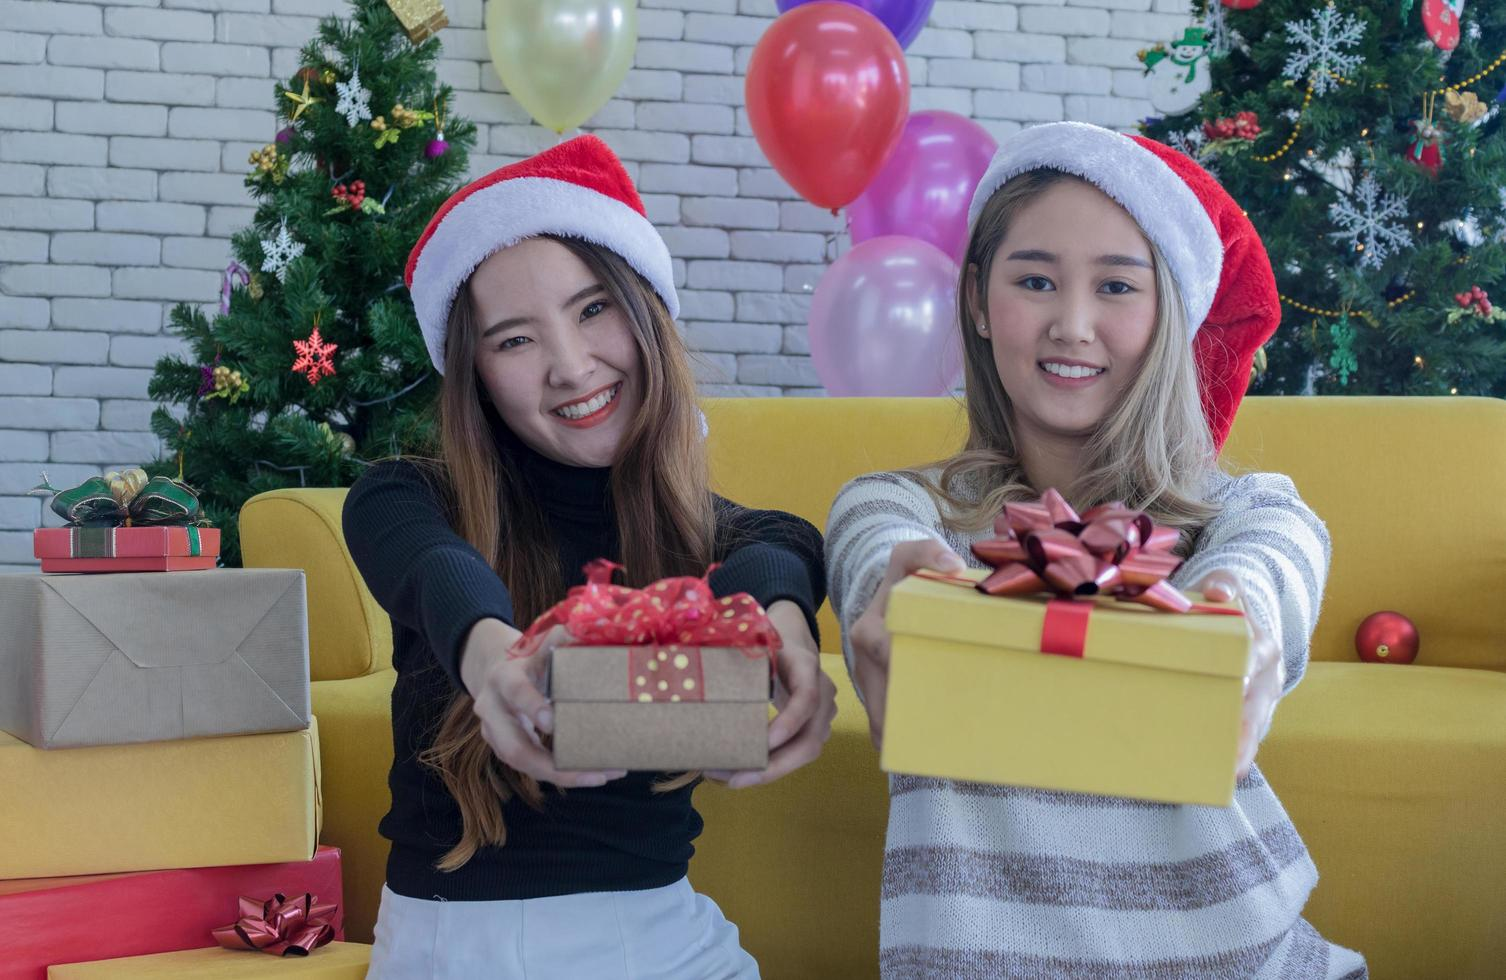 Two women holding out presents photo